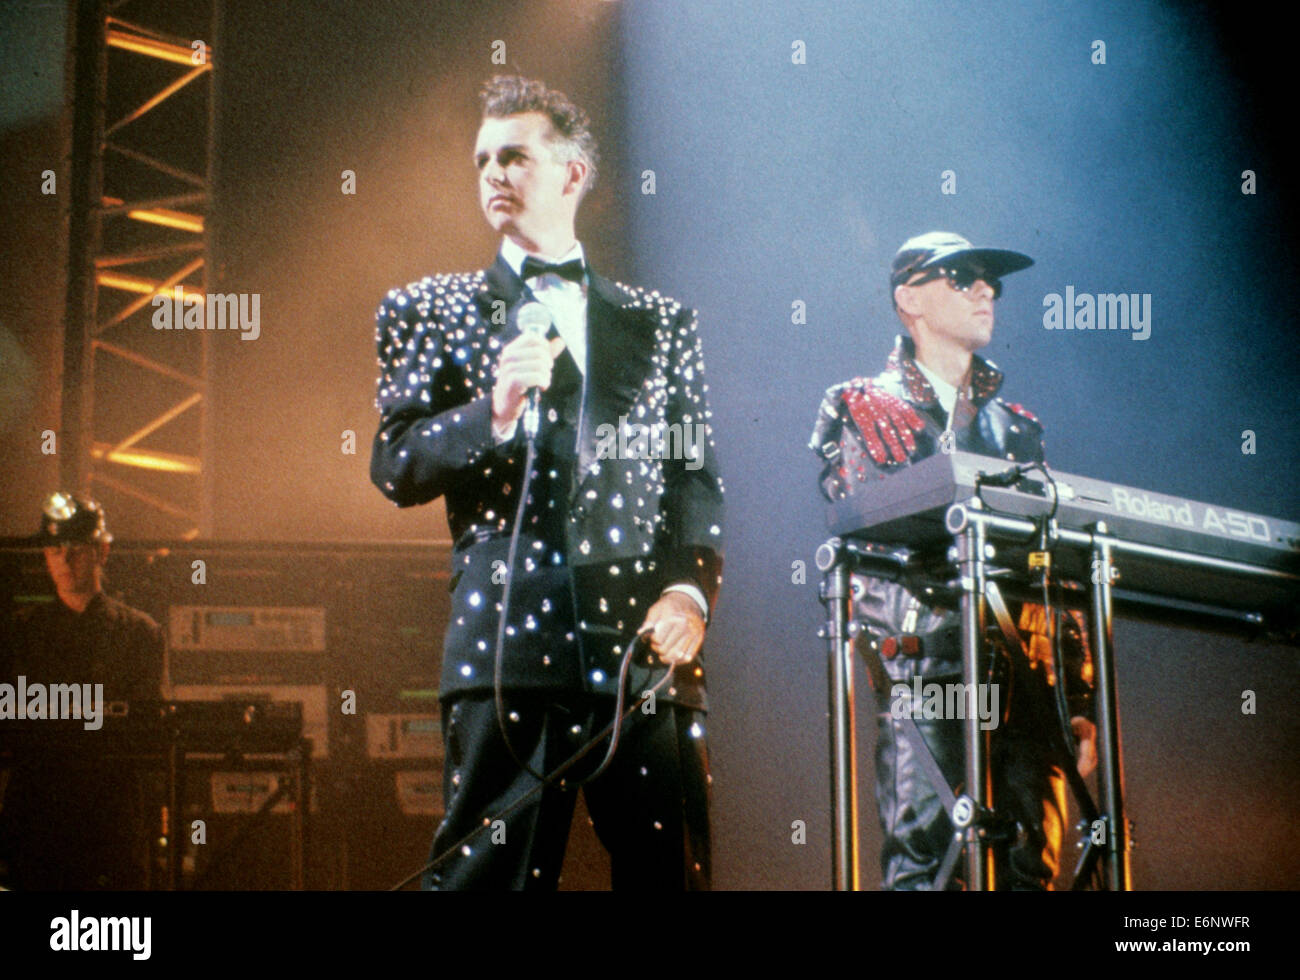 PET SHOP BOYS UK pop duo about 1990 with Neil Tennant at left and Chris Lowe. Photo Hanne Jordan - Stock Image